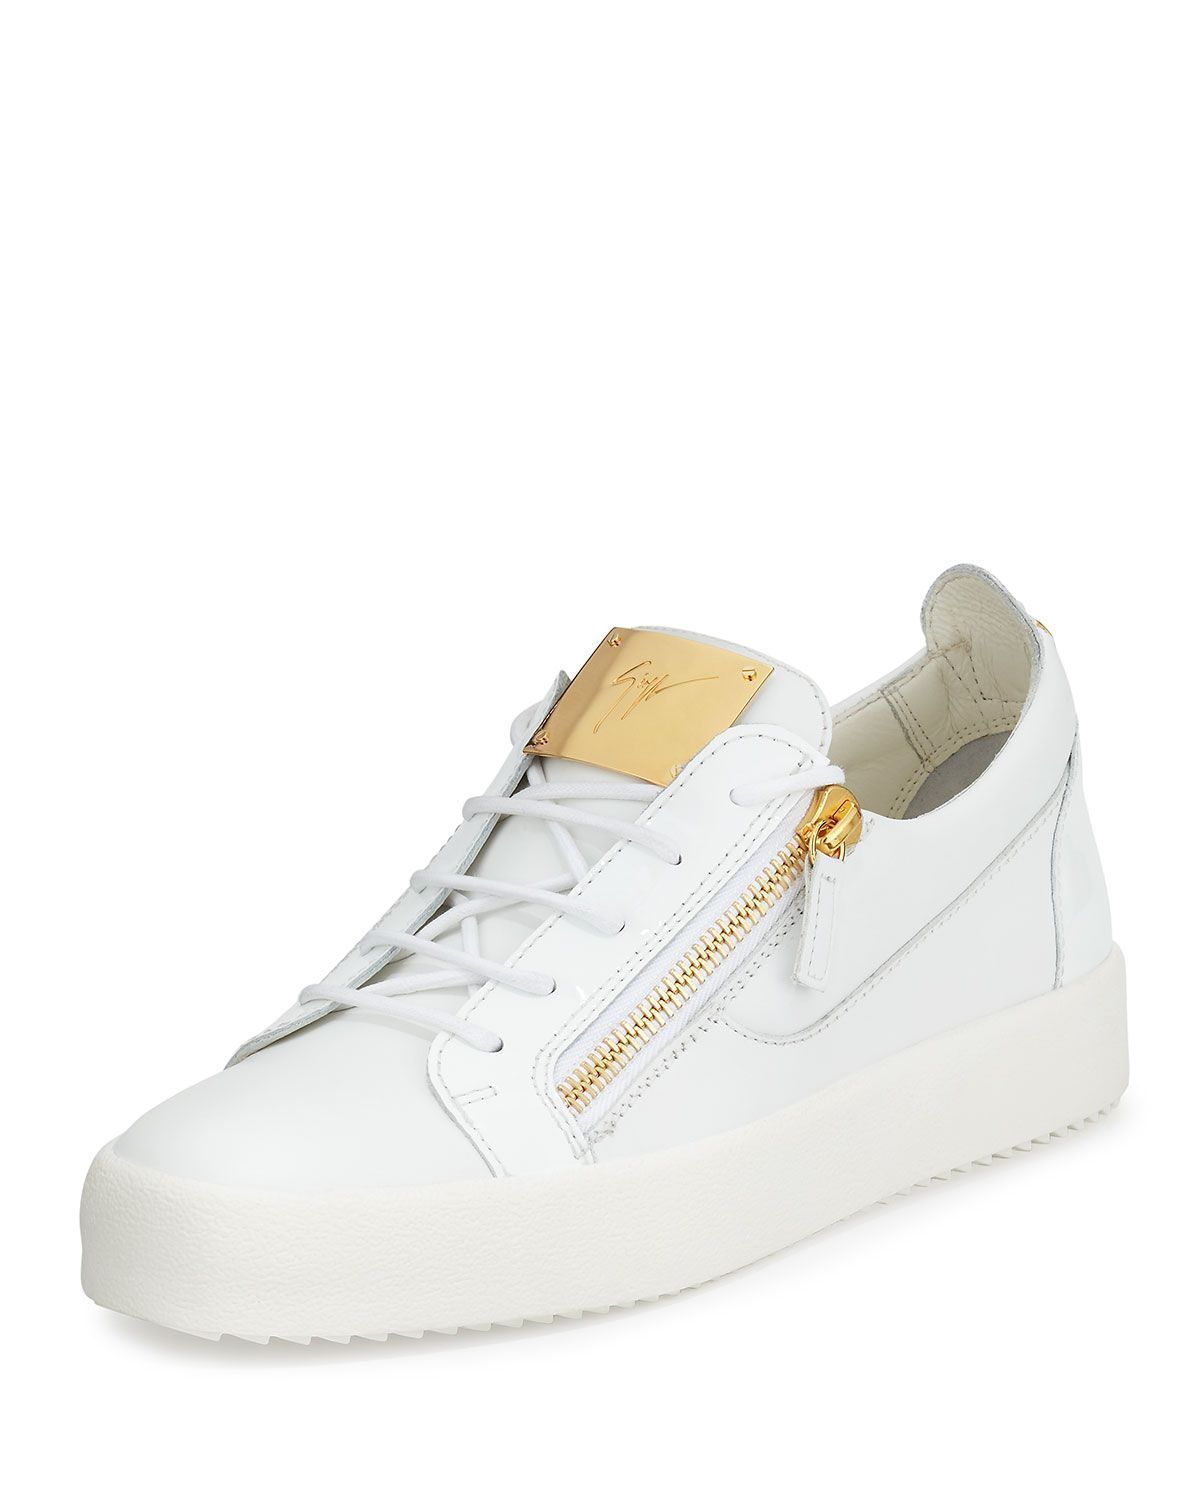 986f0b173cd96 Men's Patent Leather Low-Top Sneaker, White, Size: 47EU/14US - Giuseppe  Zanotti #GiuseppezanottiHeels